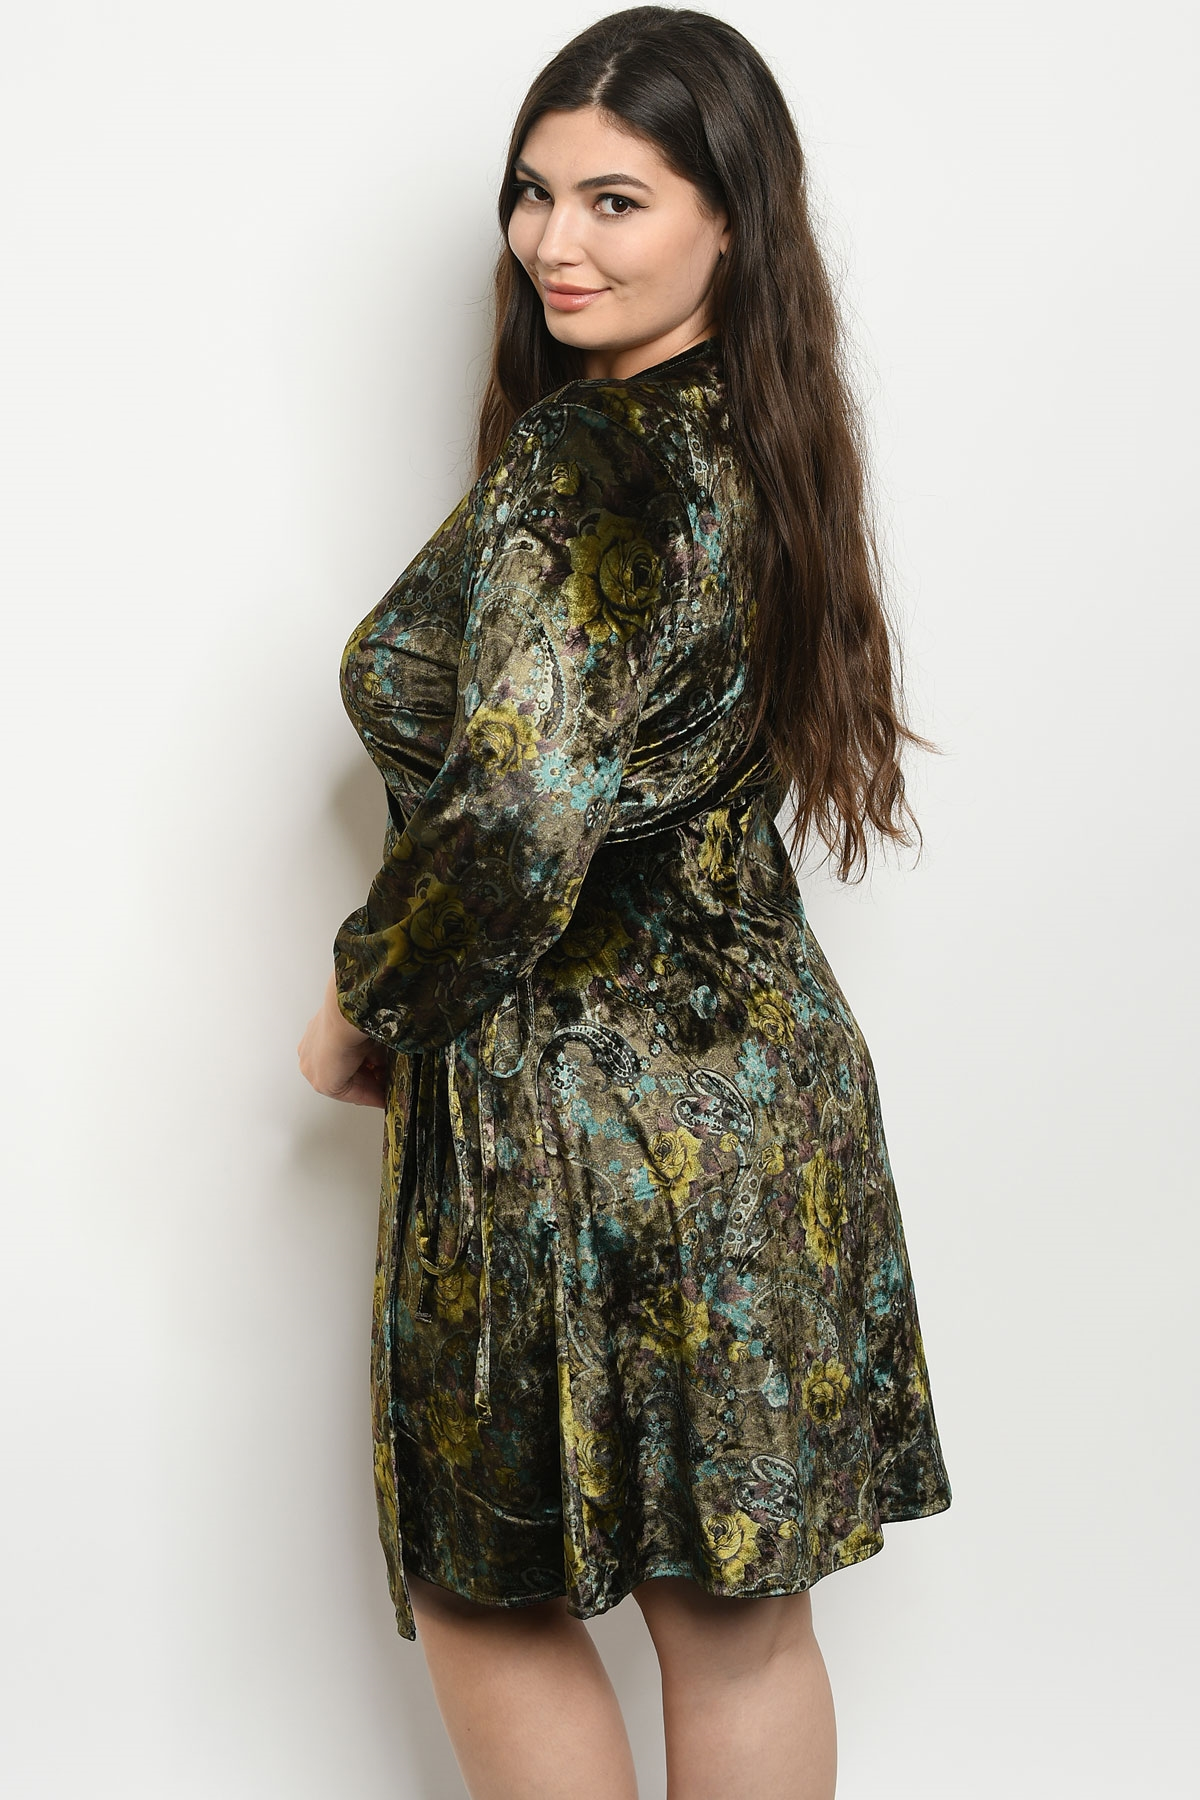 f2f65341a97 S20-5-1-D5363X OLIVE VELVET WITH ROSES PRINT PLUS SIZE DRESS 2-2-2